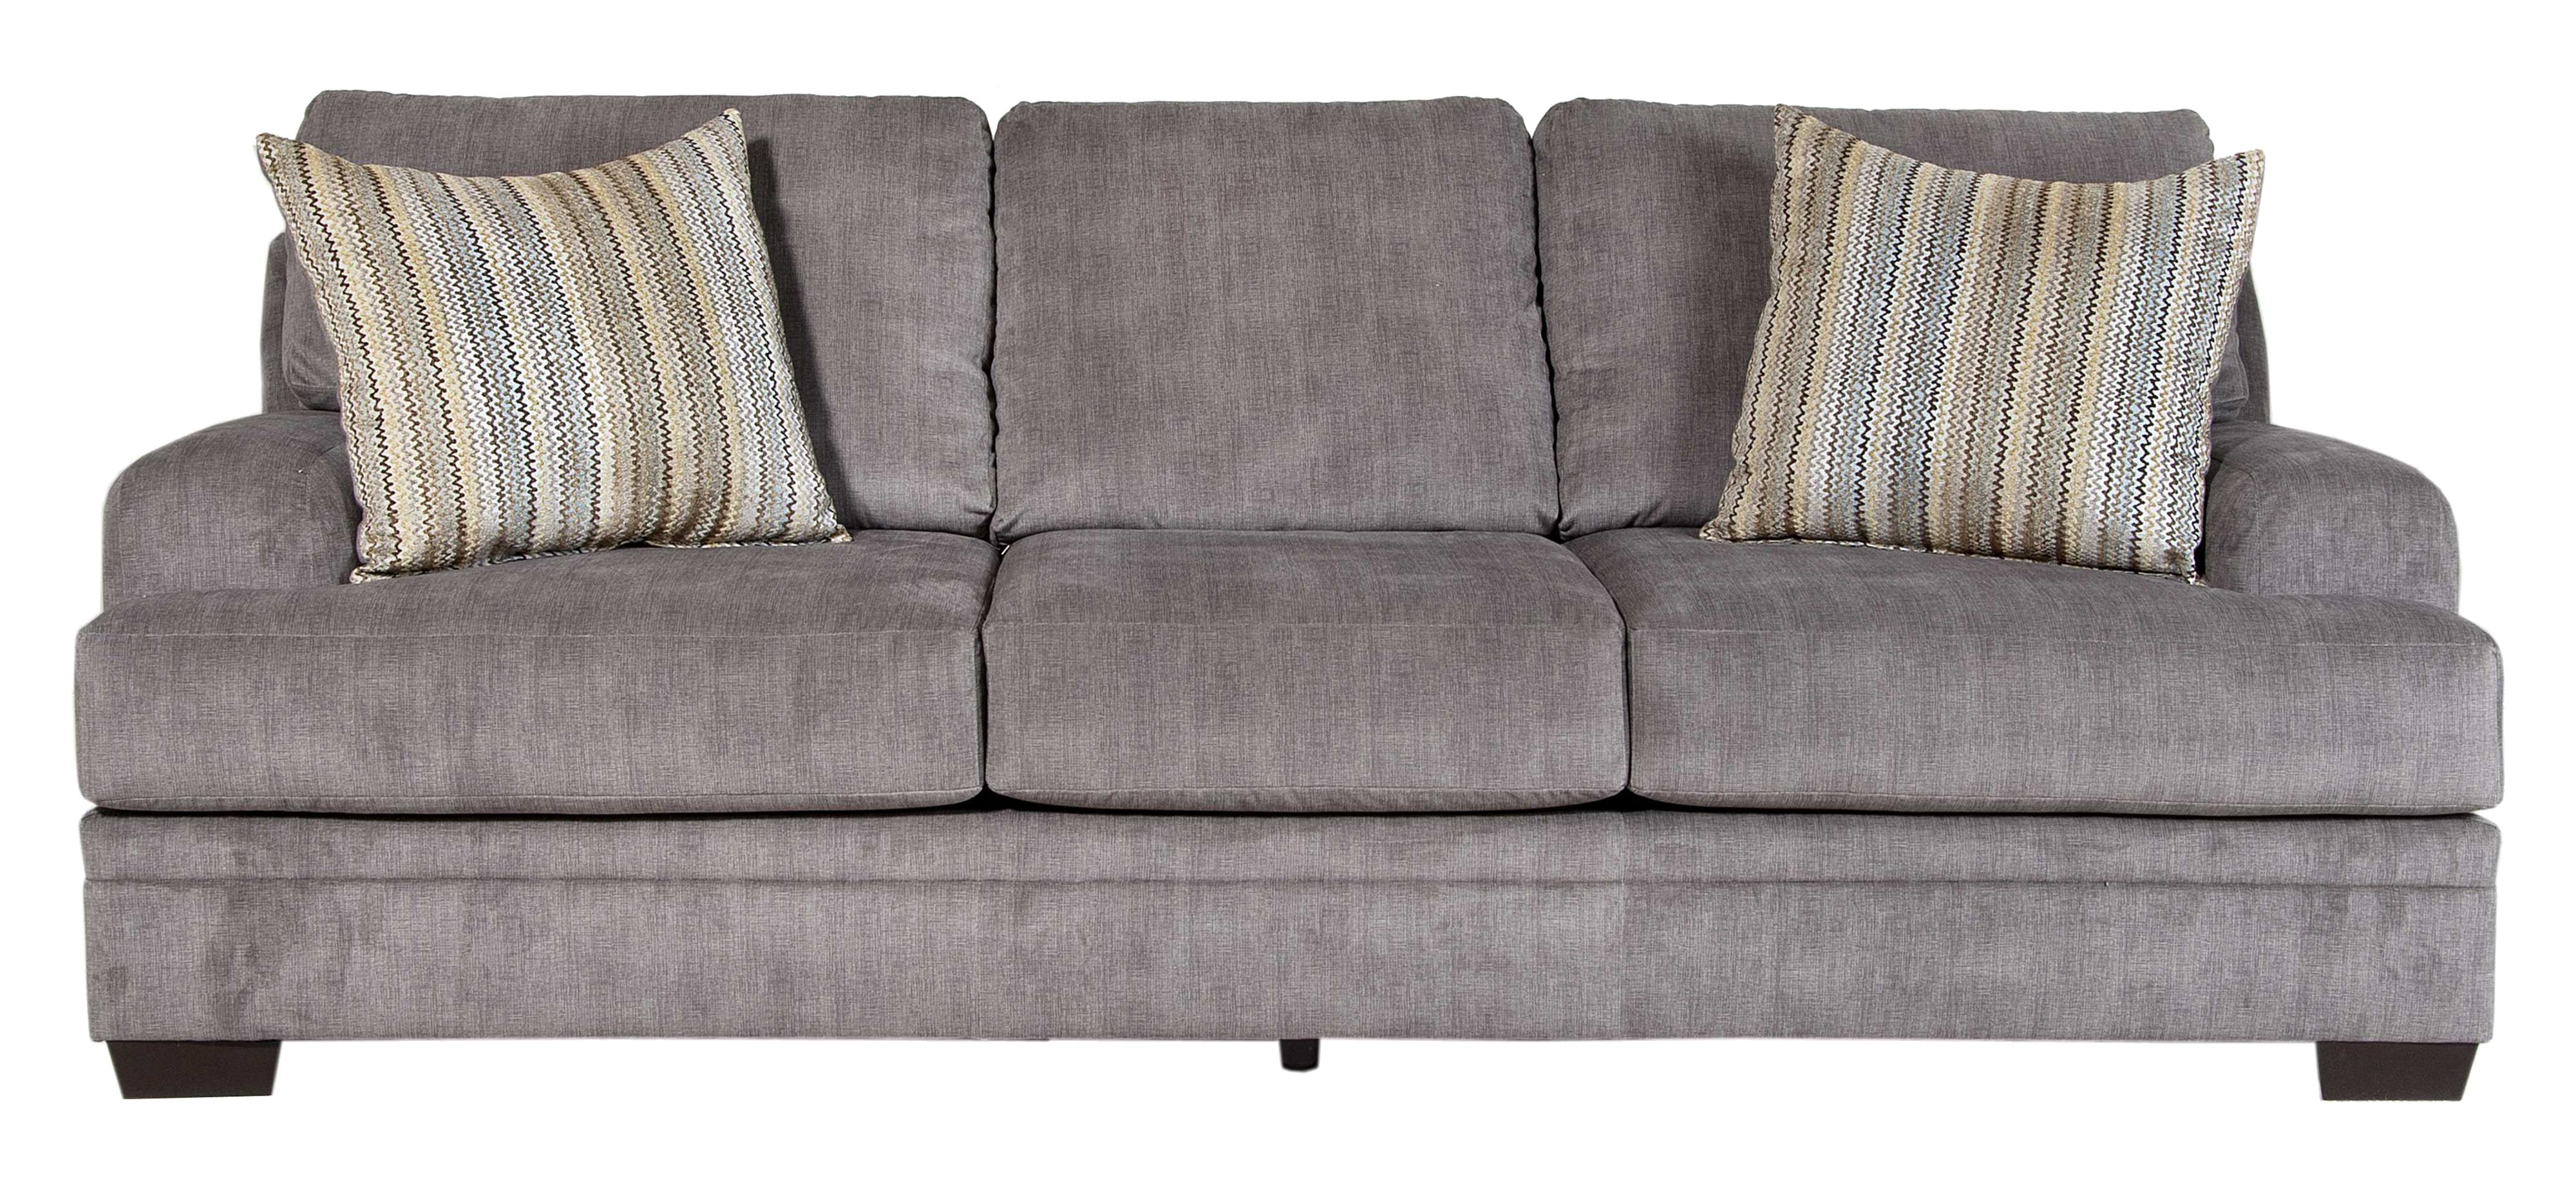 Serta Upholstery by Hughes Furniture 8800 Sofa - Item Number: 8800